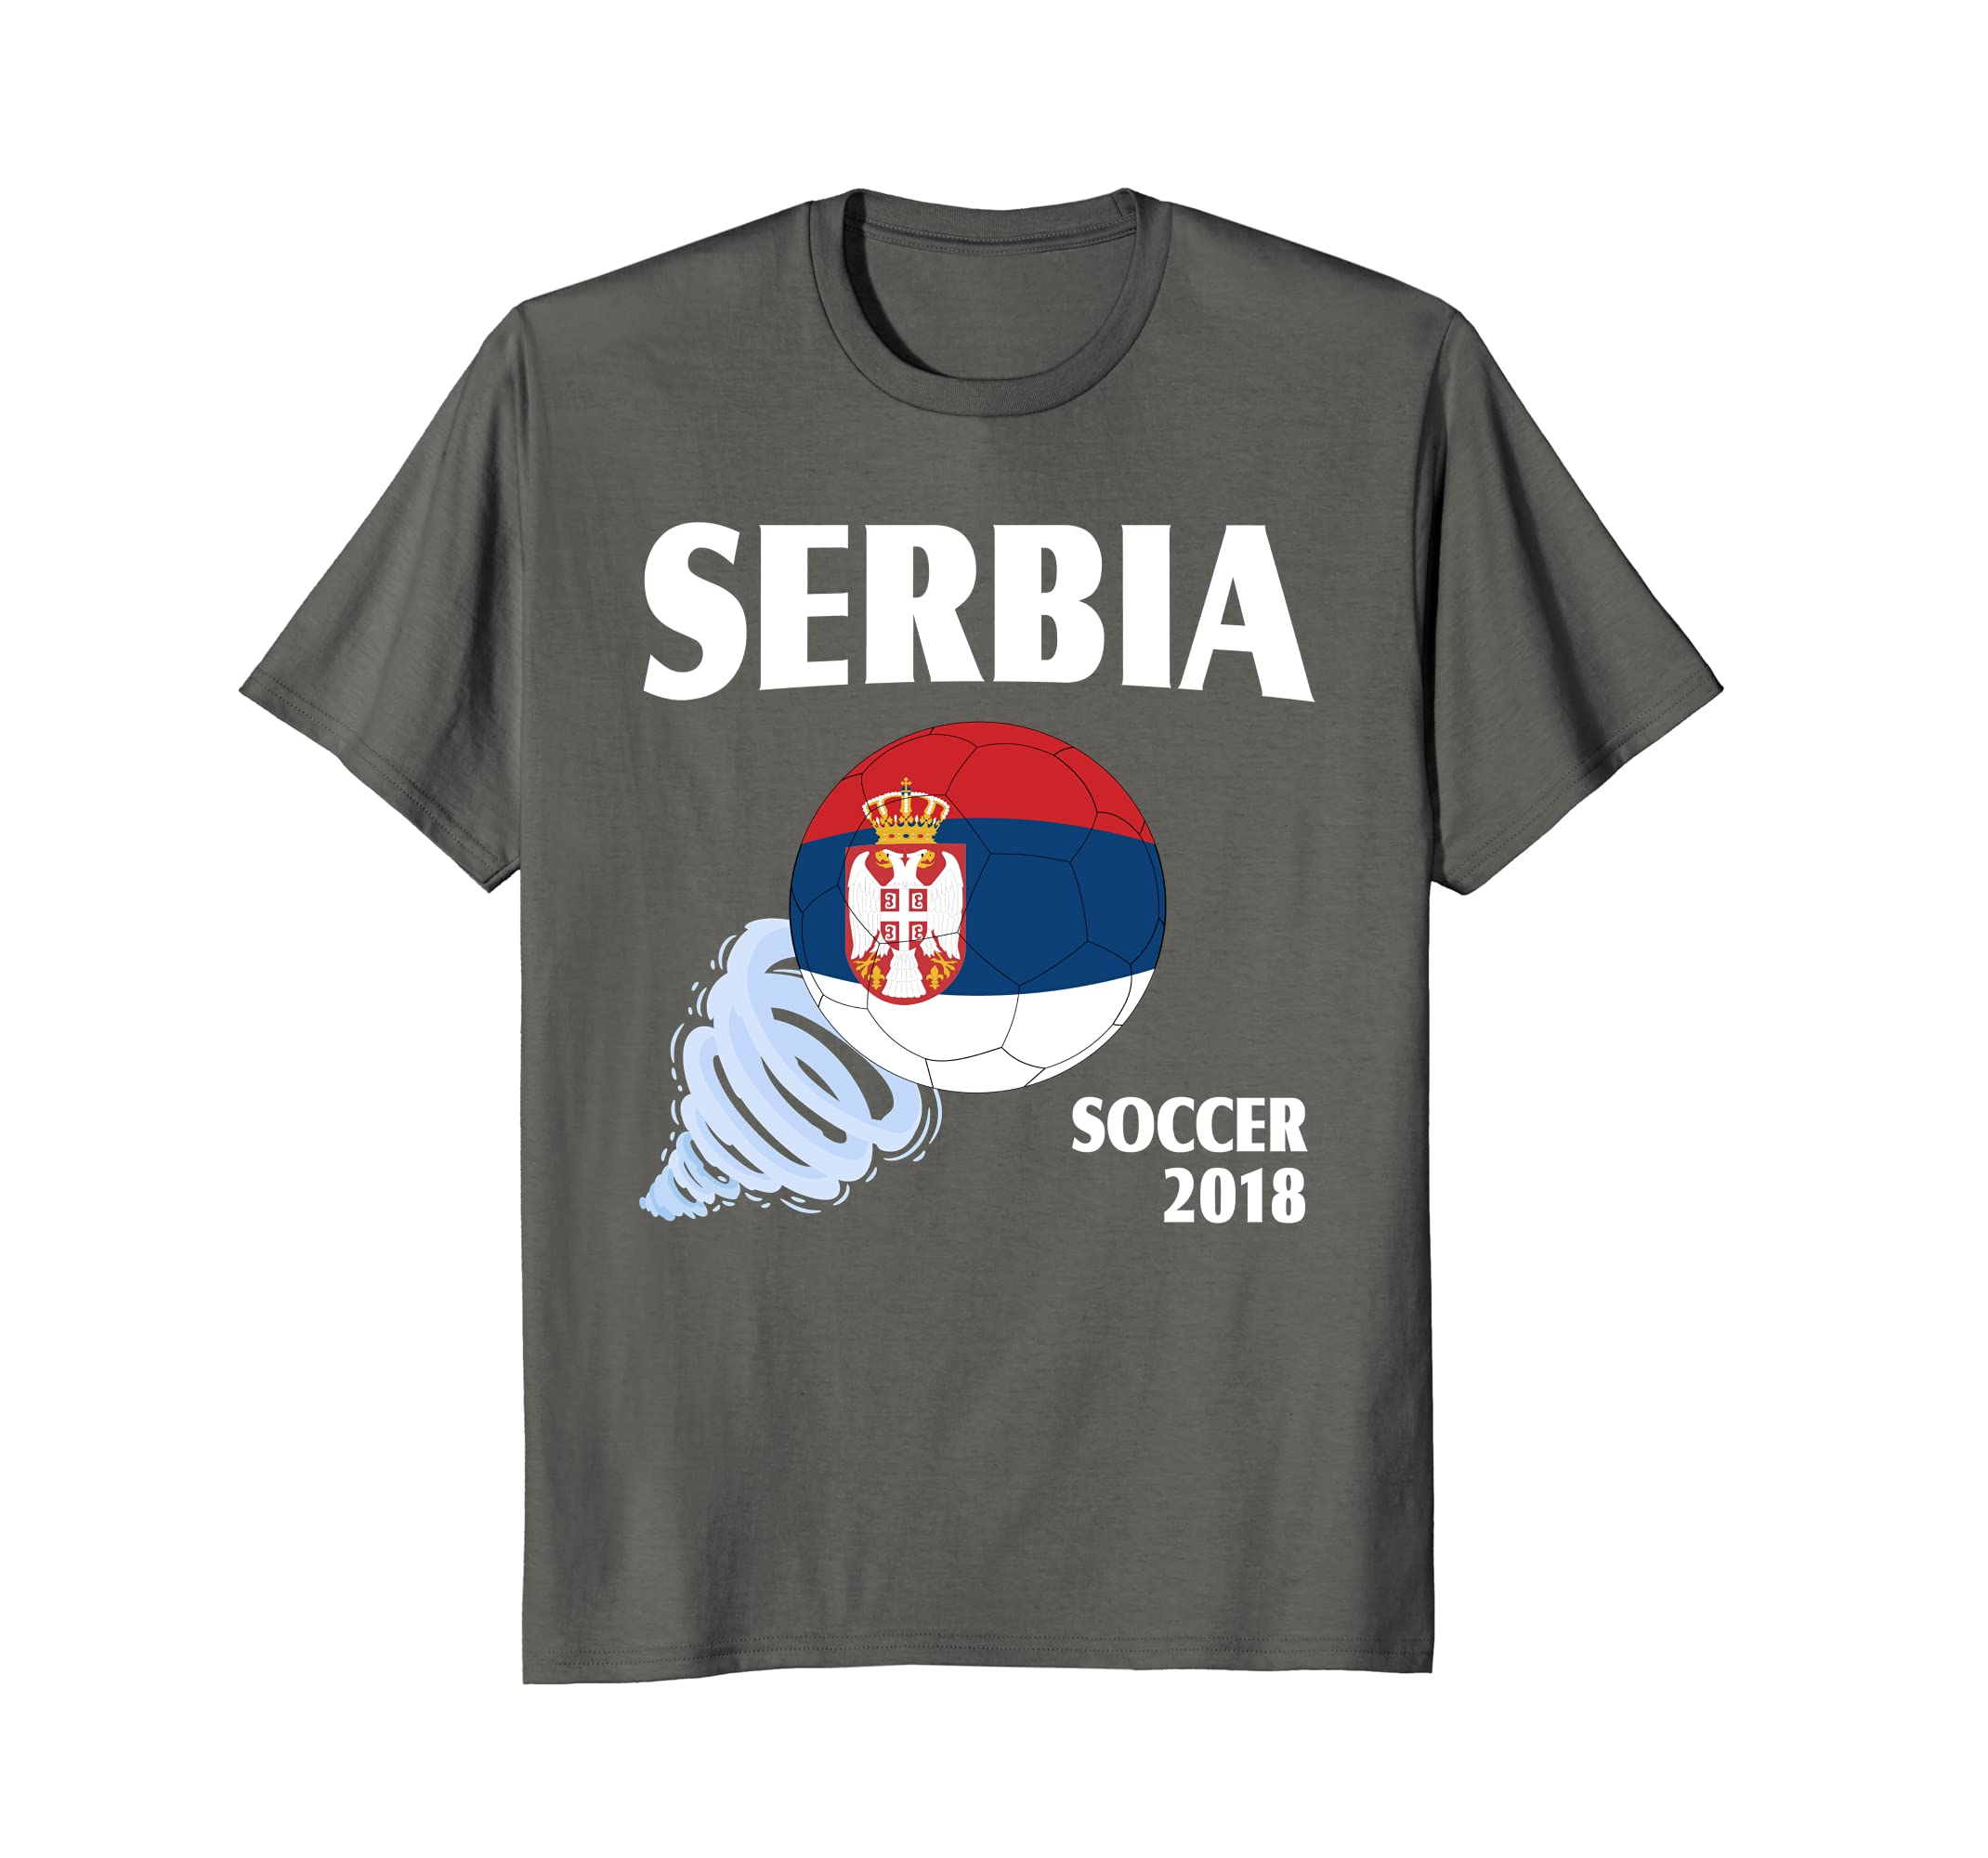 d38beb44a47 Amazon.com: Serbia Soccer 2018 Serbian Football Team Fan T-Shirt: Clothing